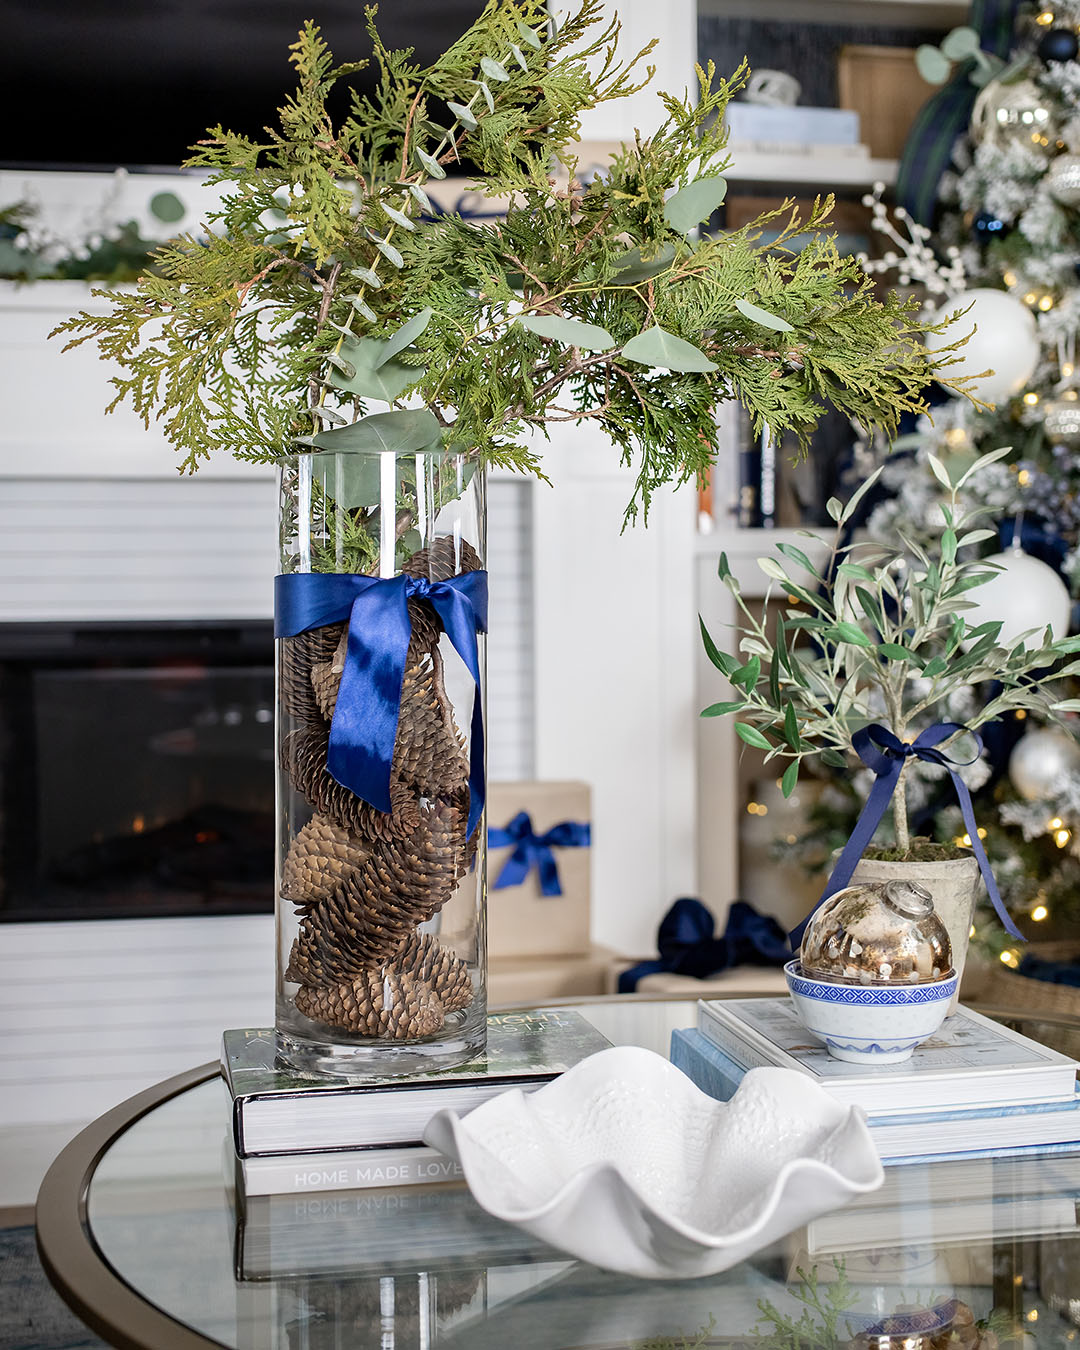 The first tree is up and it's officially Christmas season in our house! Today I'm going to share my blue and white Christmas decor from our living room!